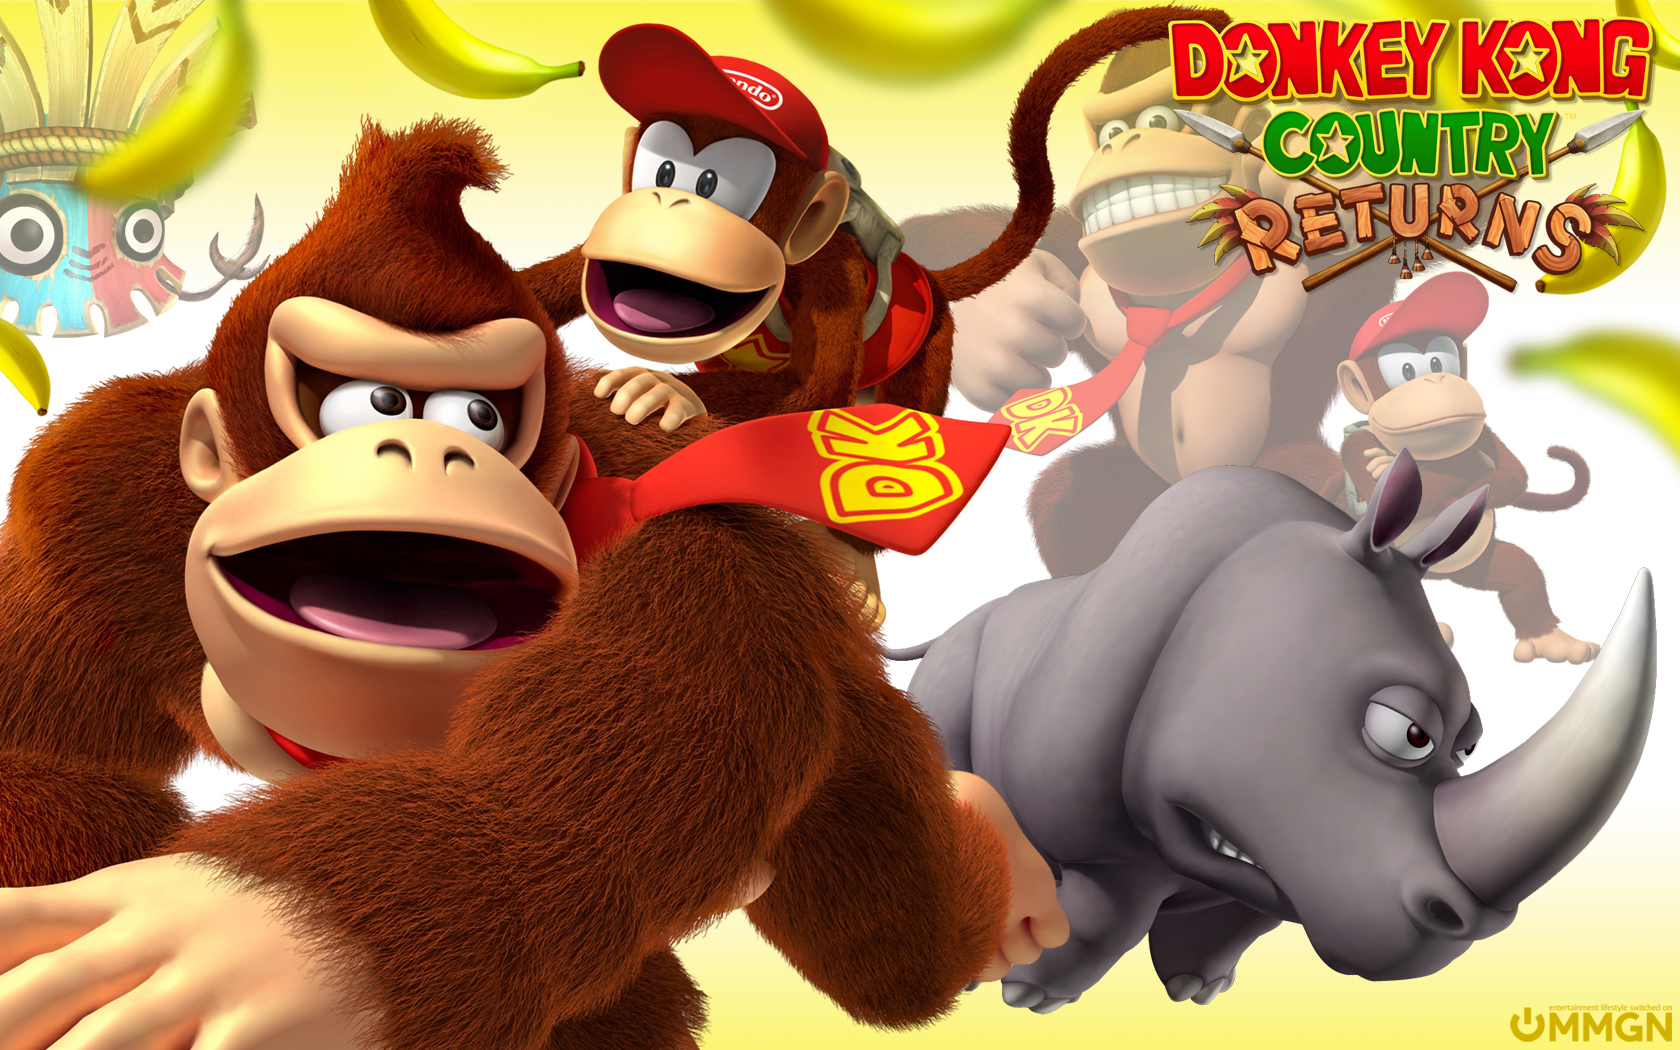 1080p Donkey Kong Concept Art Wallpaper